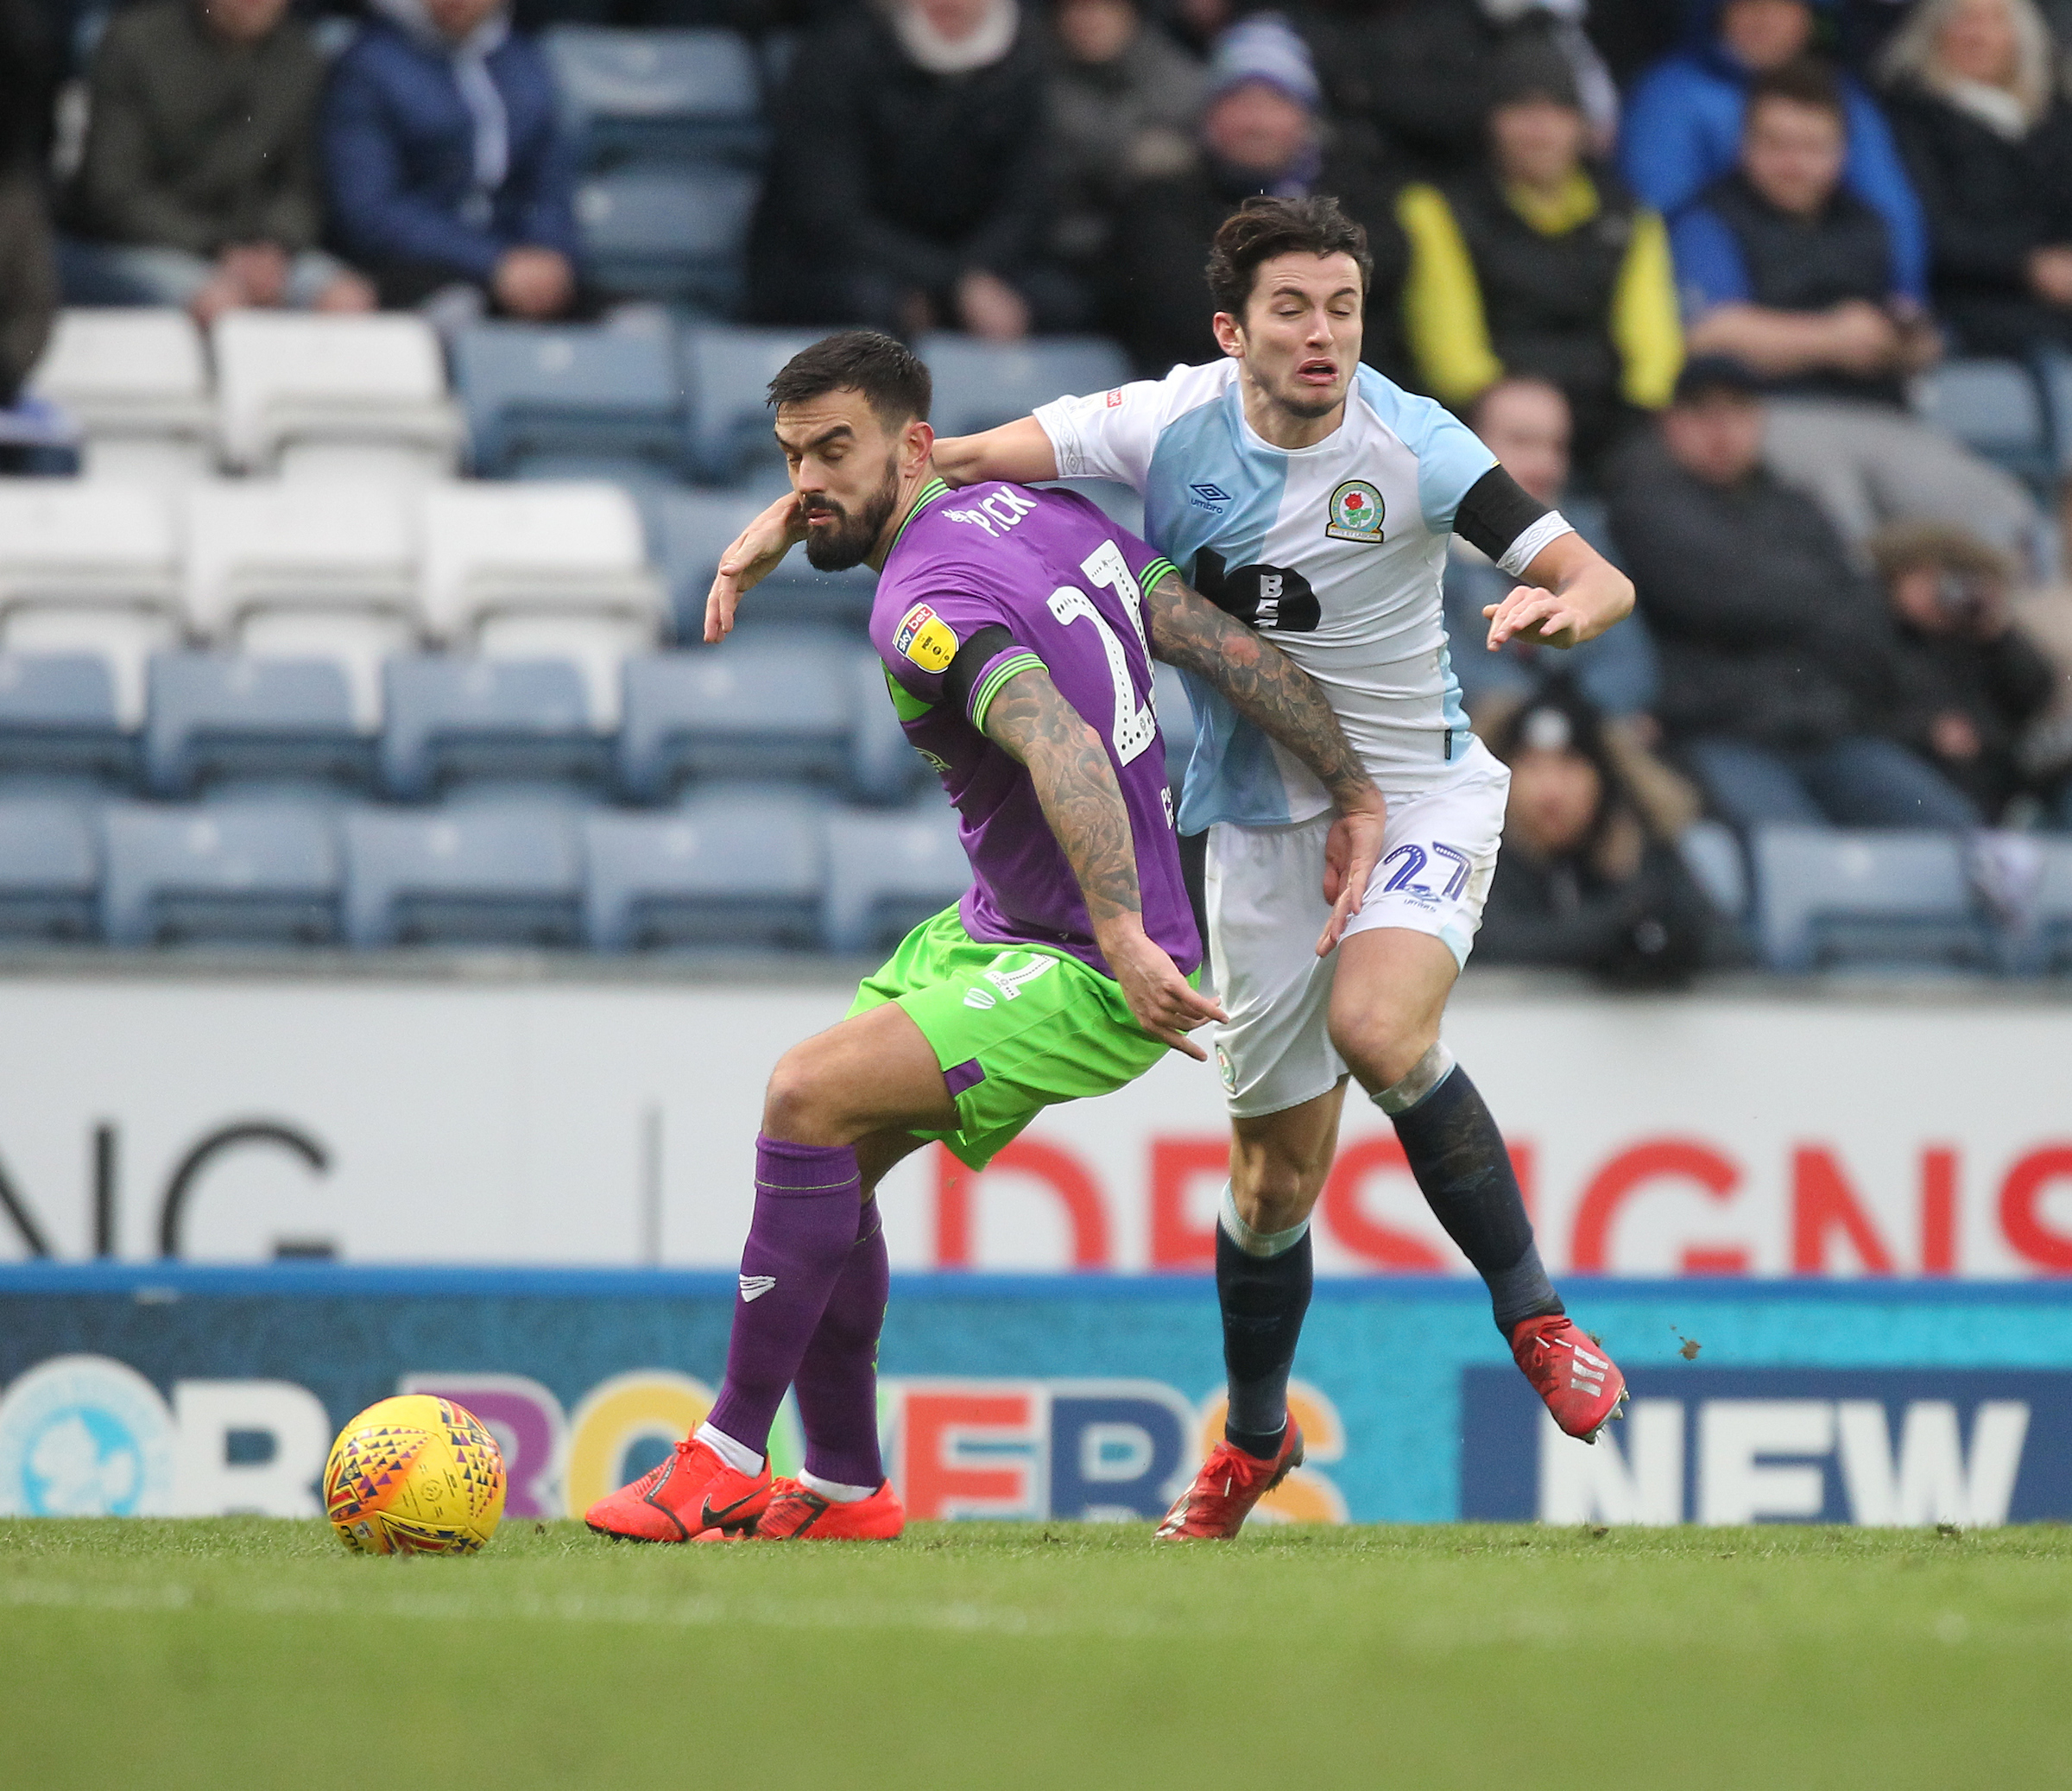 Lewis Travis made his ninth consecutive start for Rovers against Bristol City